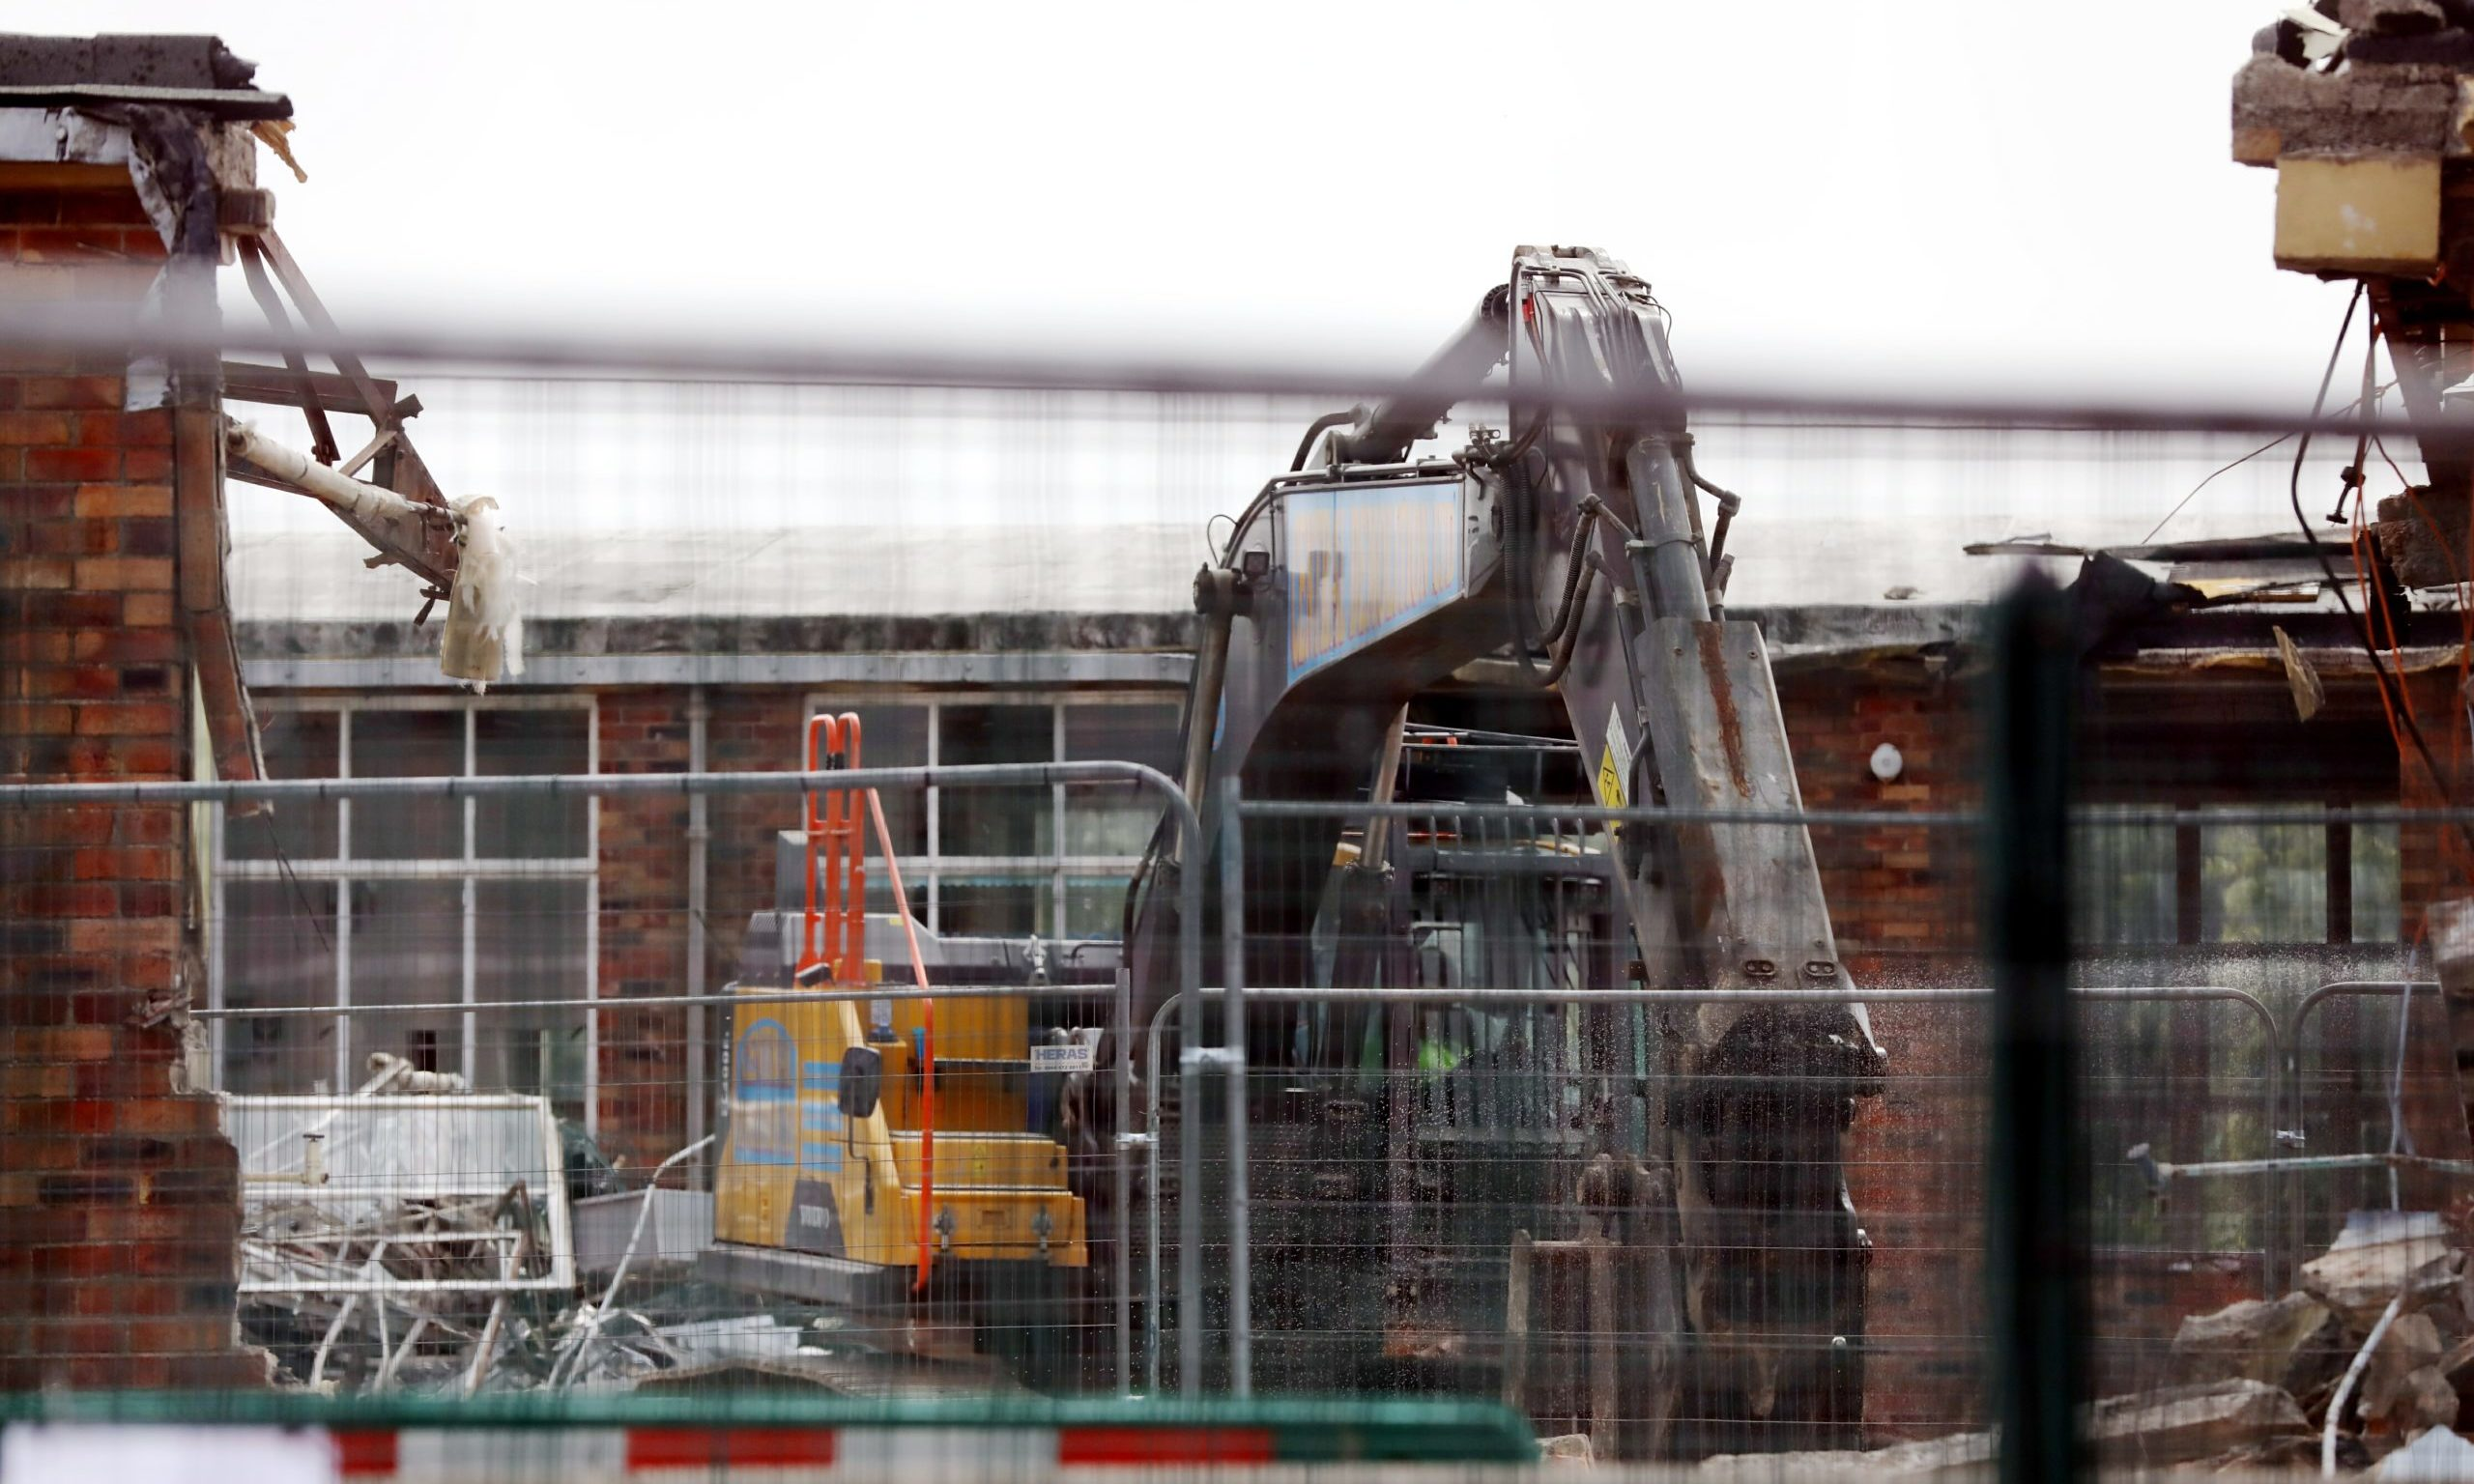 The old Hayshead School is in the middle of being demolished - but work has now ground to a halt.